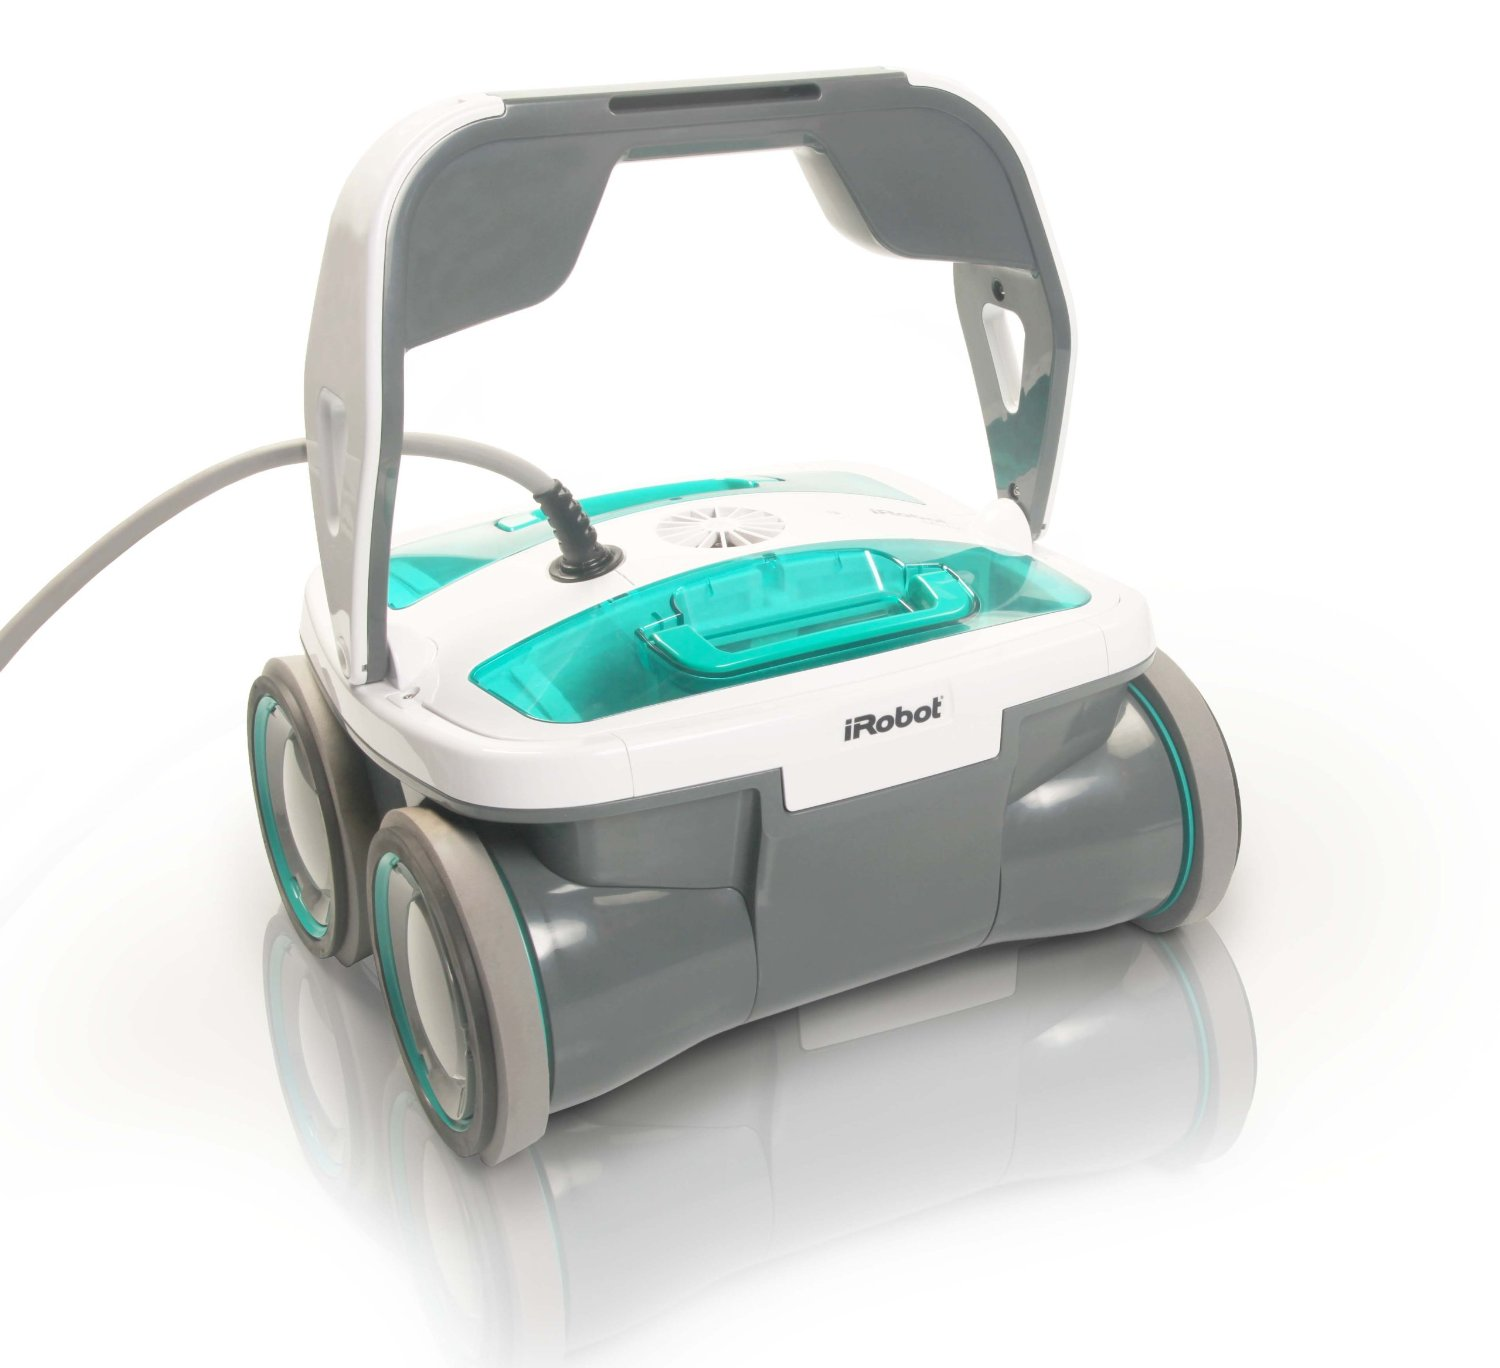 iRobot Mirra Floor Outdoor Cleaning Robots